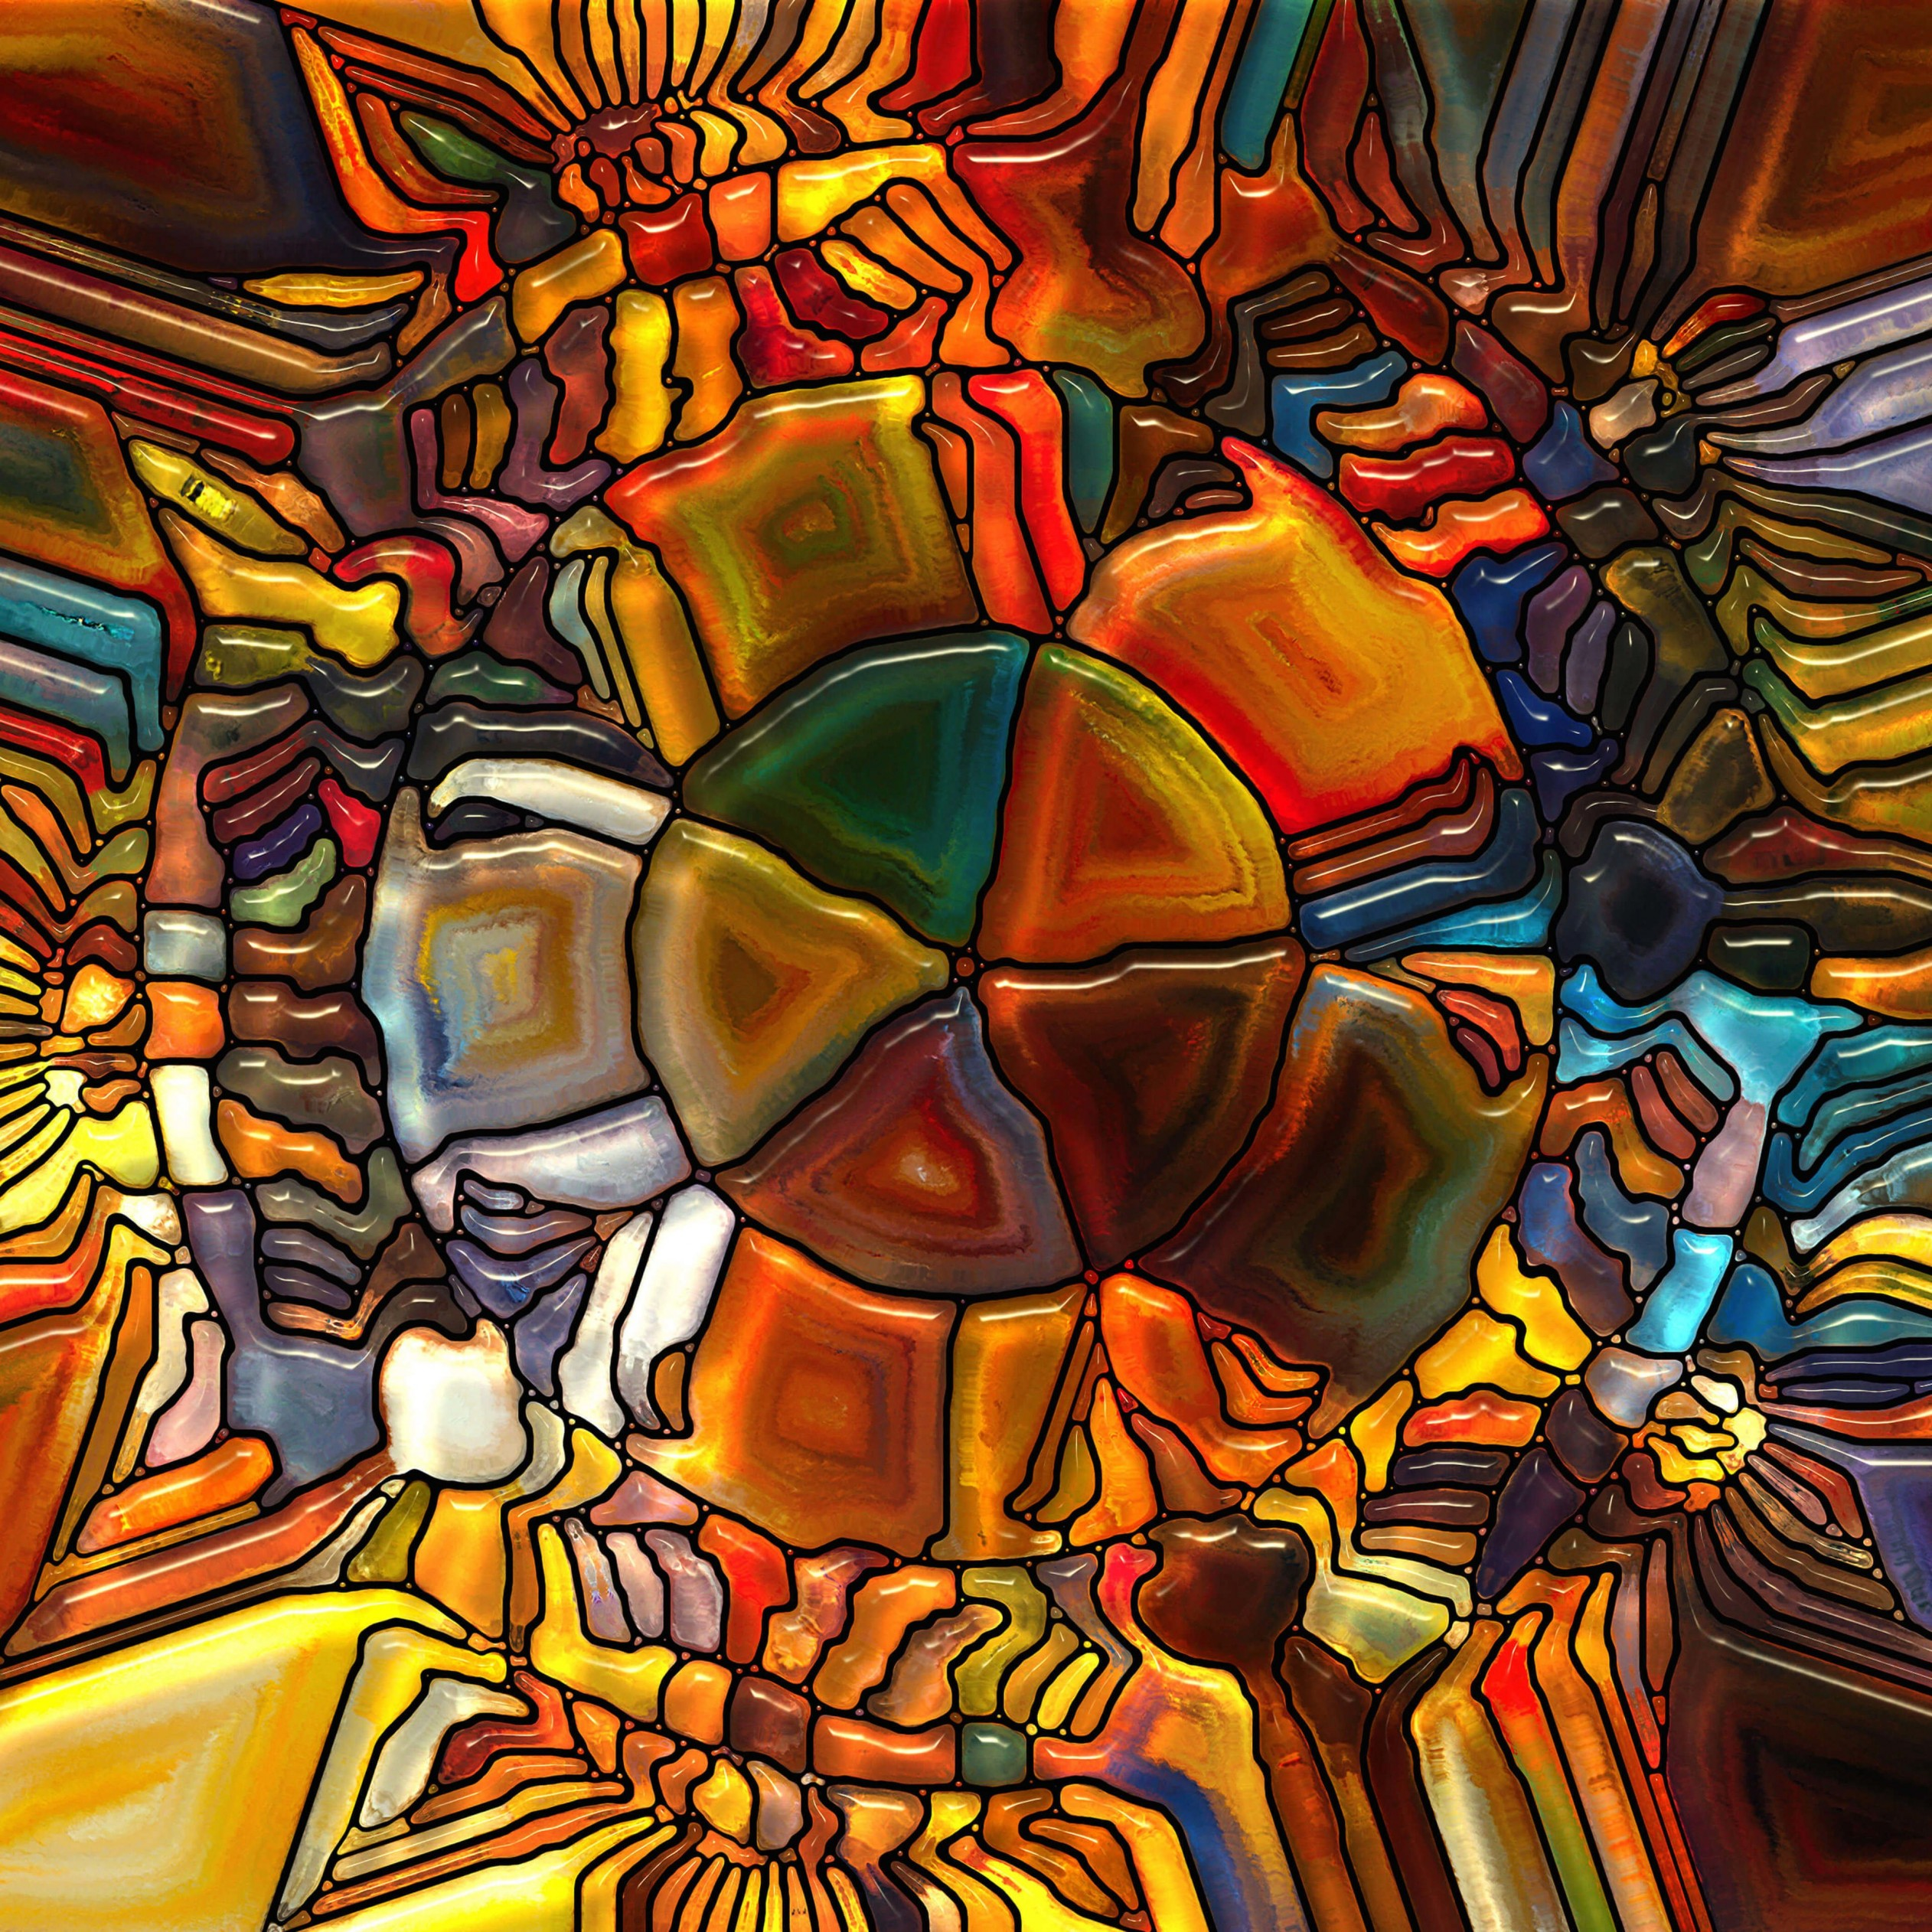 Psychedelic Stained Glass Wallpaper for Apple iPad 3